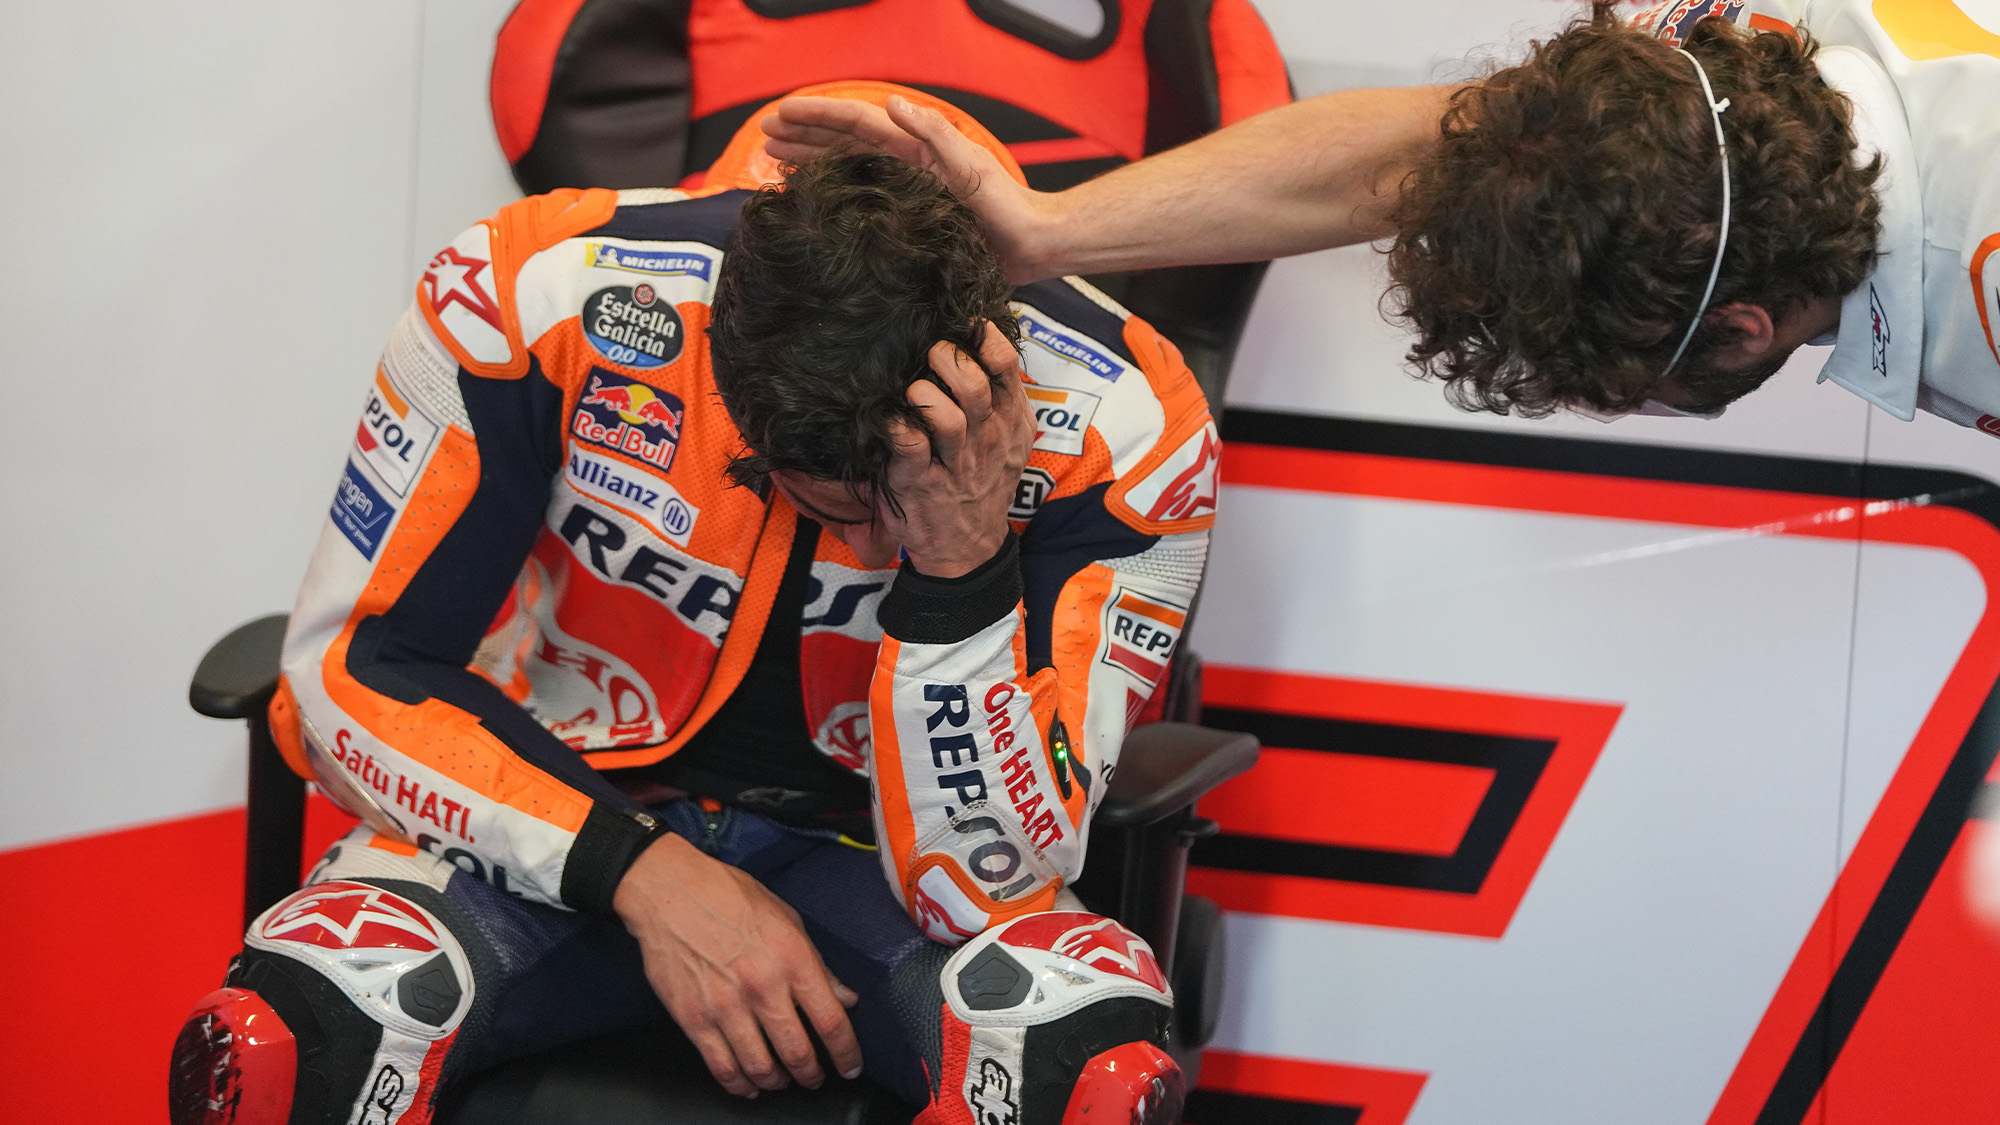 Márquez's amazing MotoGP return: now he knows he's not bombproof